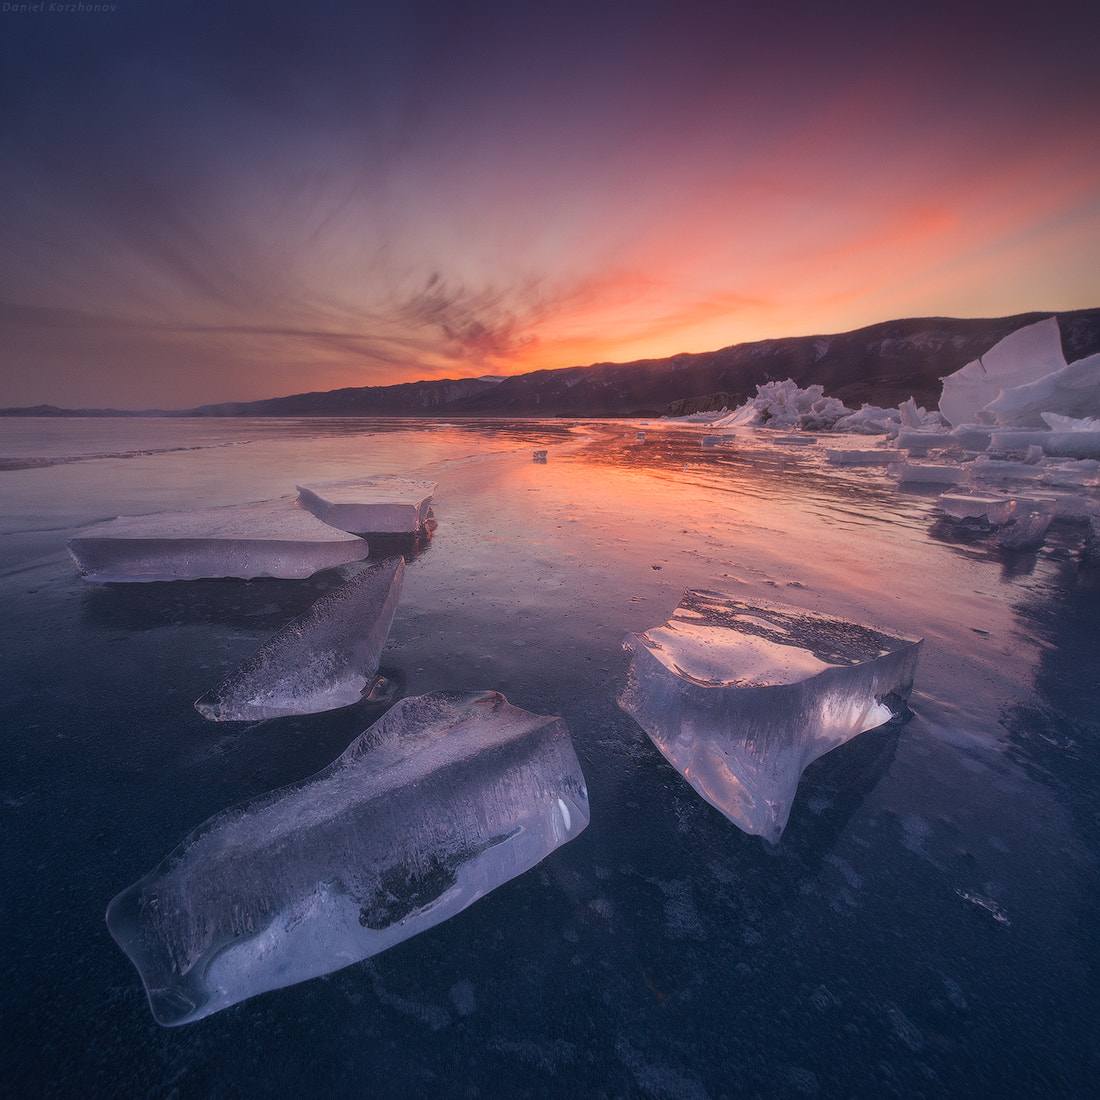 Photograph Fire and Ice by Daniel Kordan on 500px